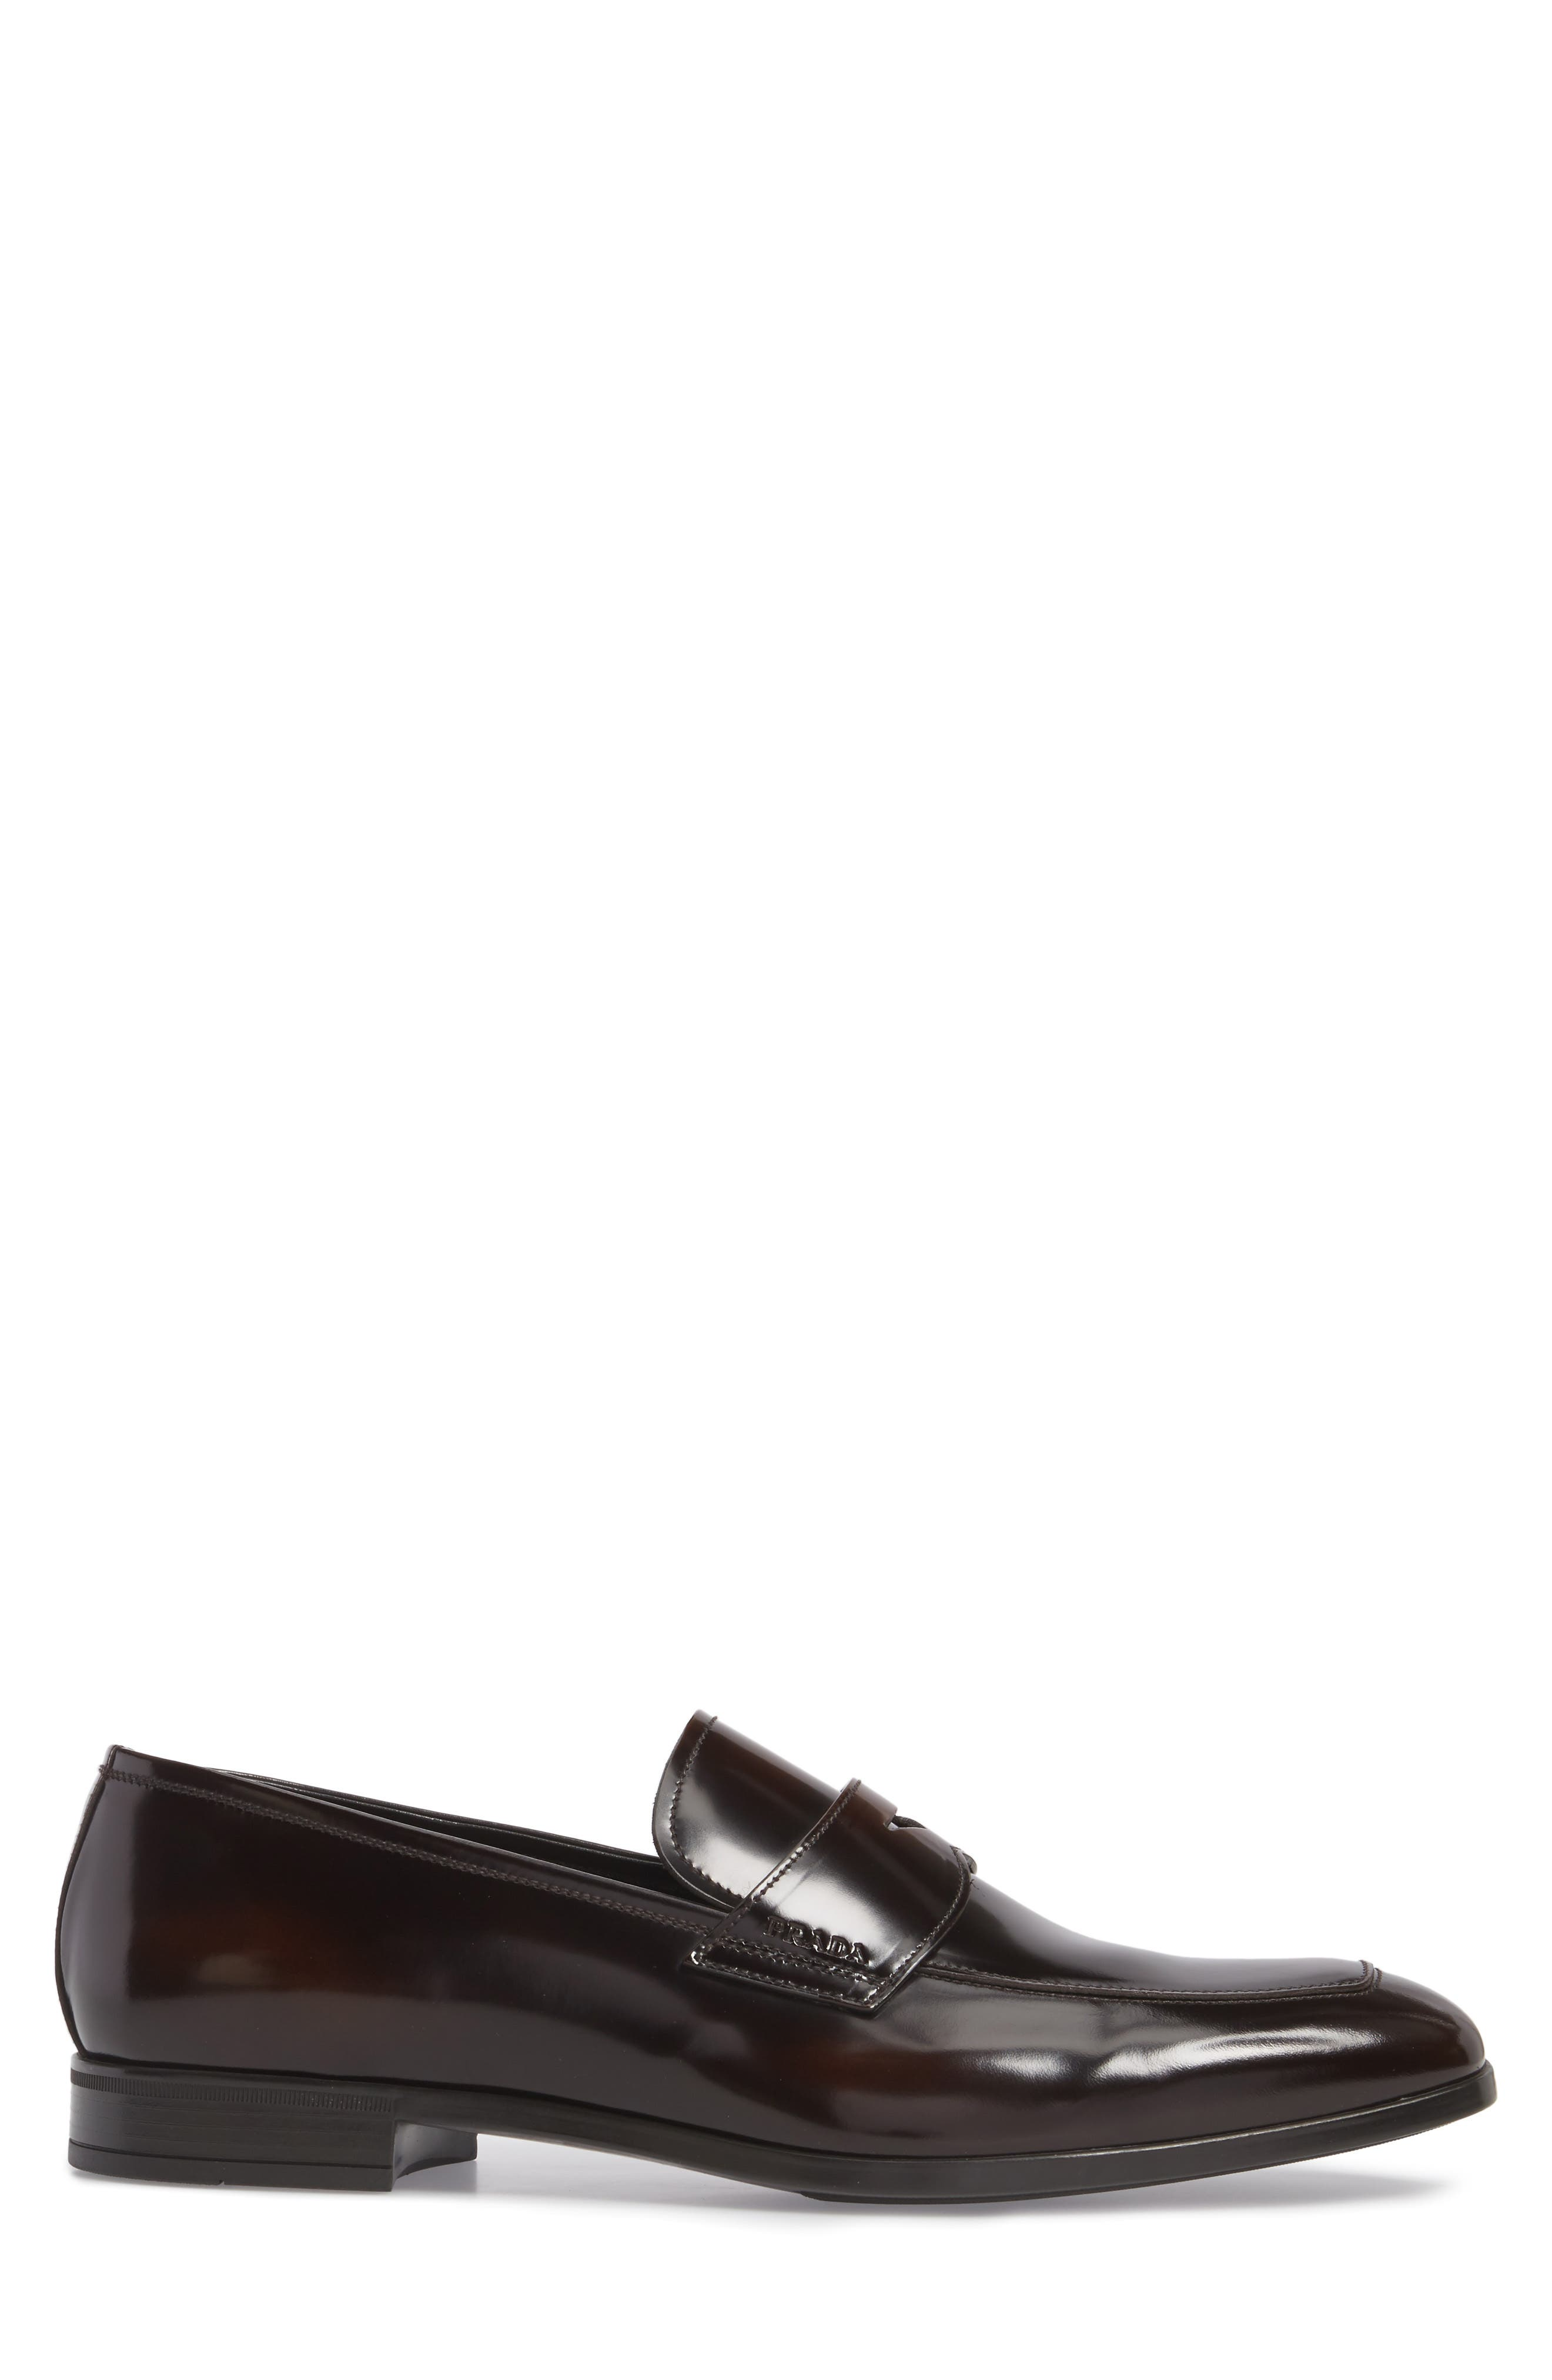 Alternate Image 3  - Prada Penny Loafer (Men)